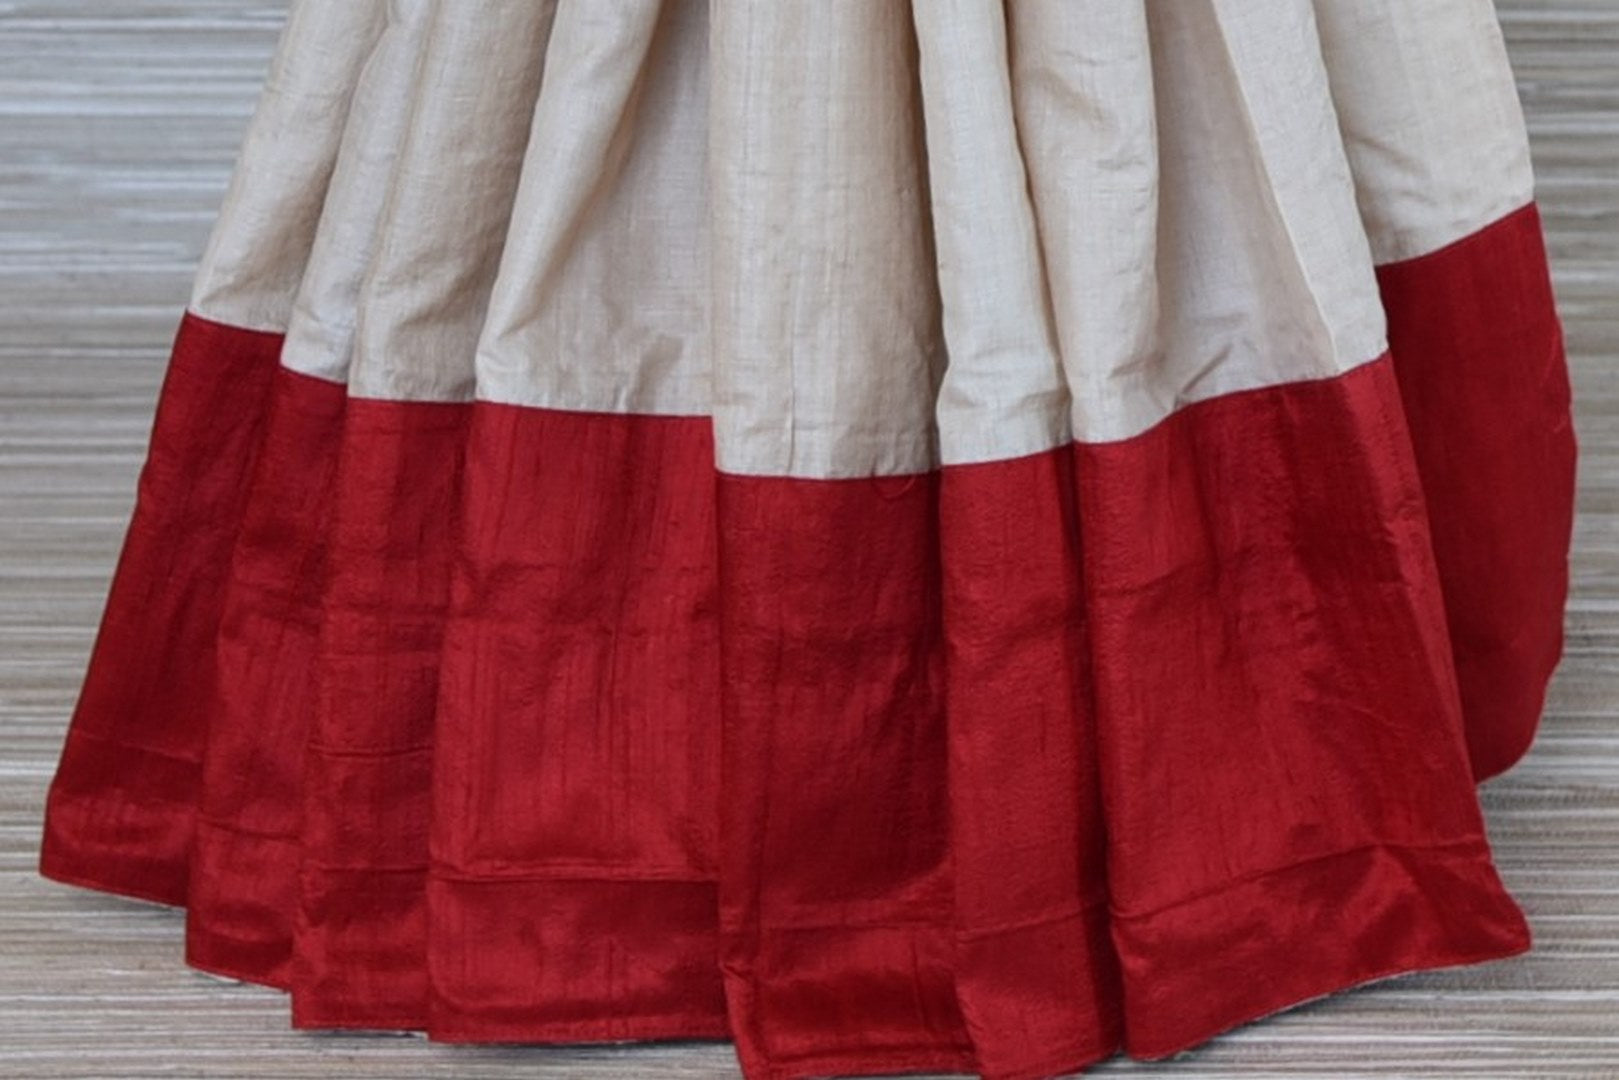 Buy cream tussar saree online in USA with red border and embroidered blouse. Update your saree wardrobe this festive season with latest designer sarees. soft silk sarees, handwoven saris from Pure Elegance Indian cloth store in USA. Shop online  now.-pleats